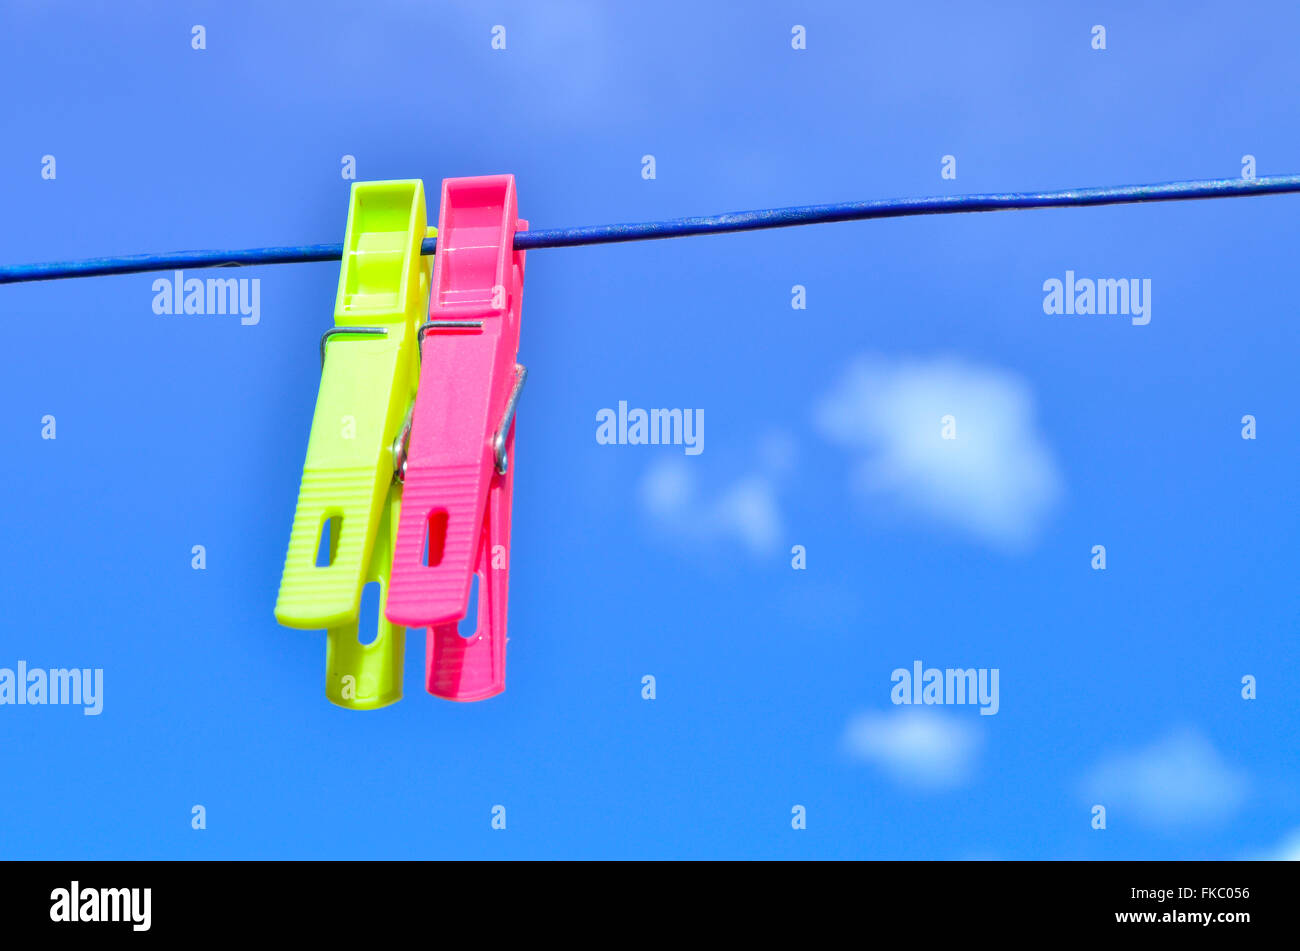 Plastic clothes pegs on washing line. - Stock Image